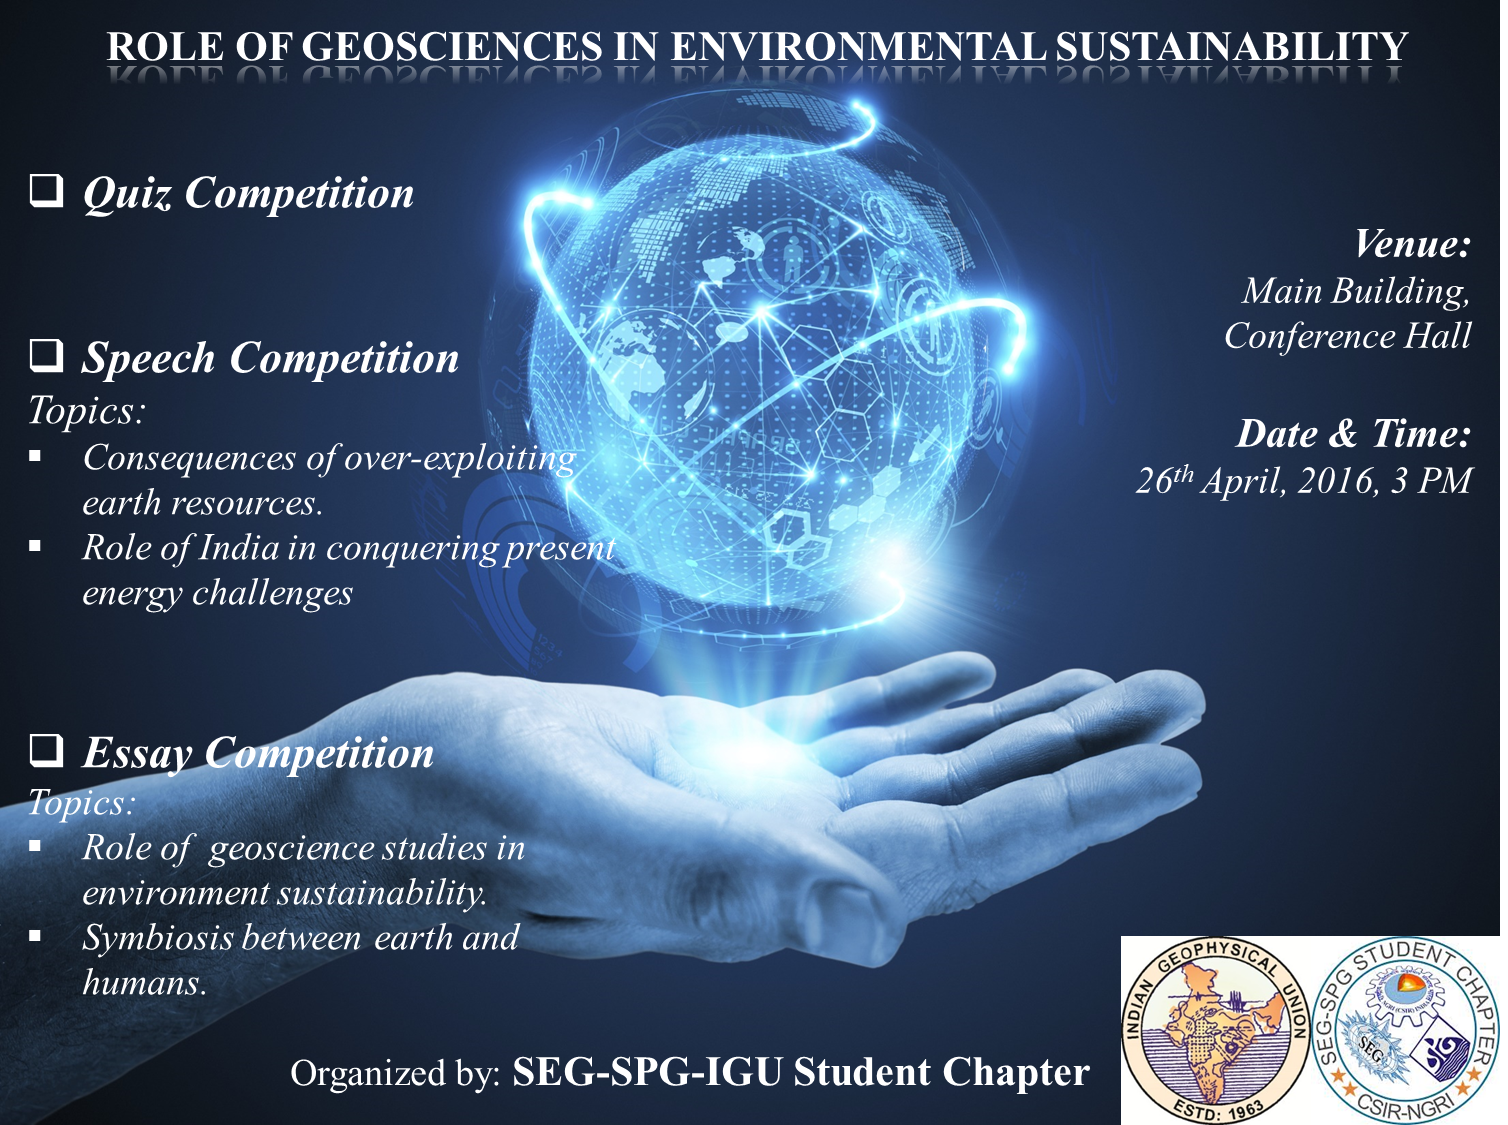 essay on environmental sustainability Access to over 100,000 complete essays and term papers the esi was developed for 142 countries to measure the overall progress towards environmental sustainability.